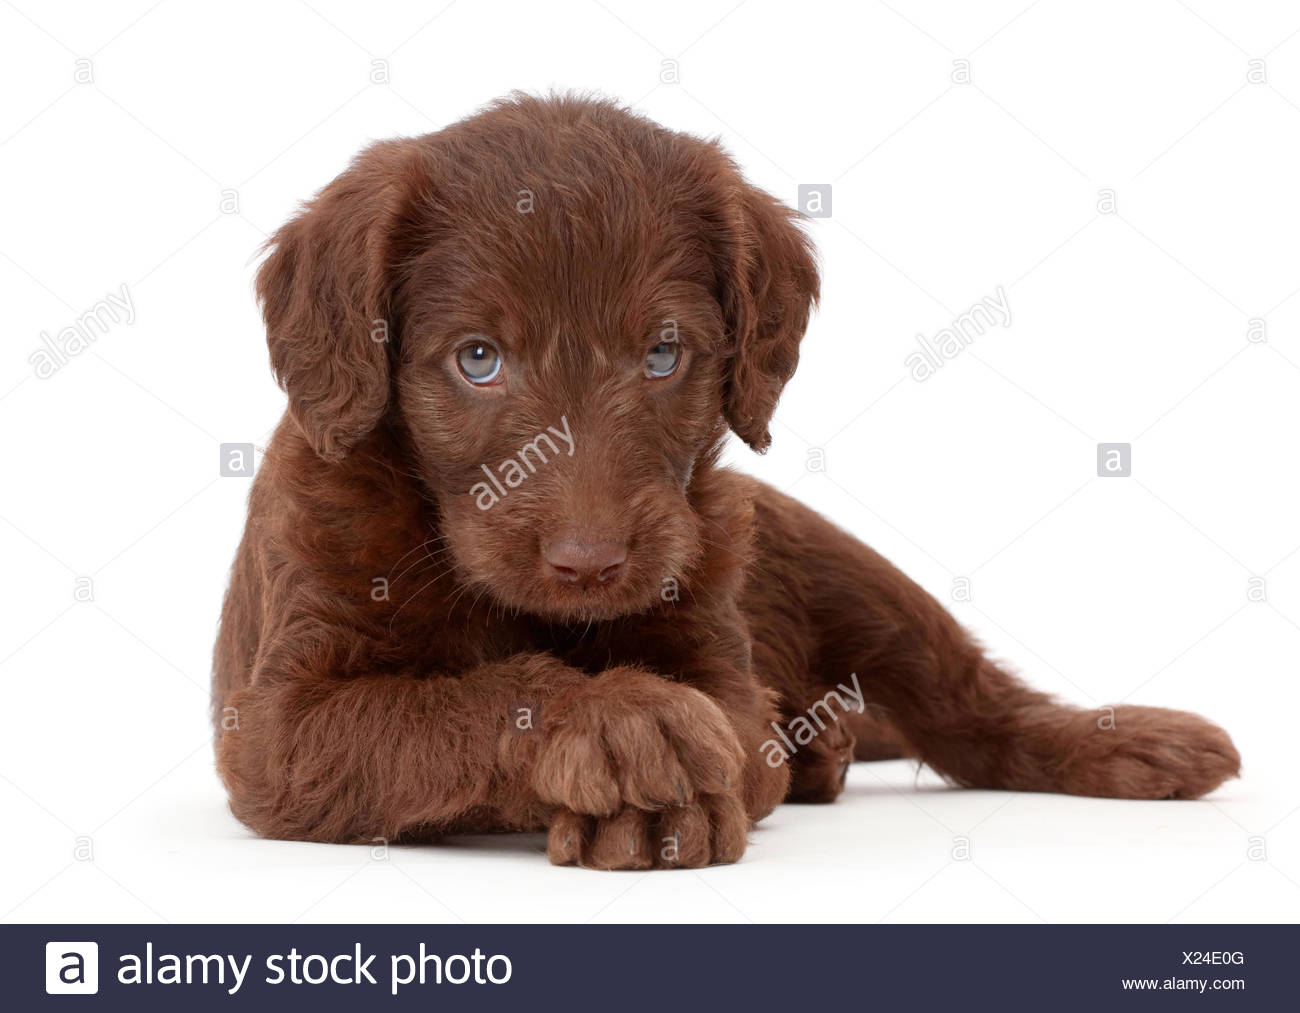 Chocolate Labradoodle Puppy Stock Photo 276694000 Alamy